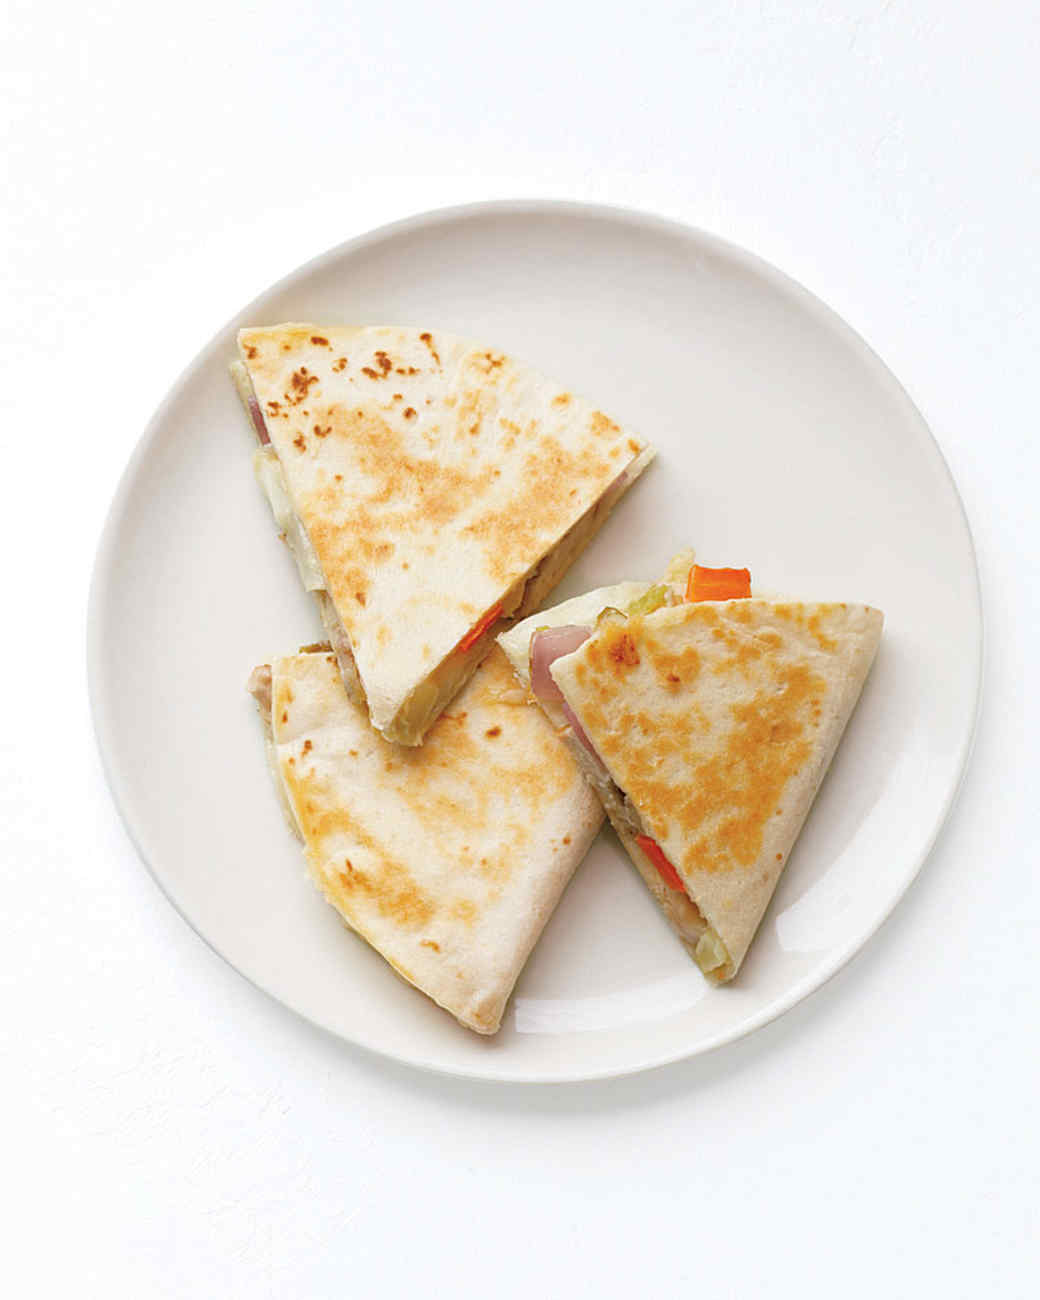 pork-quesadillas-2-med107616.jpg